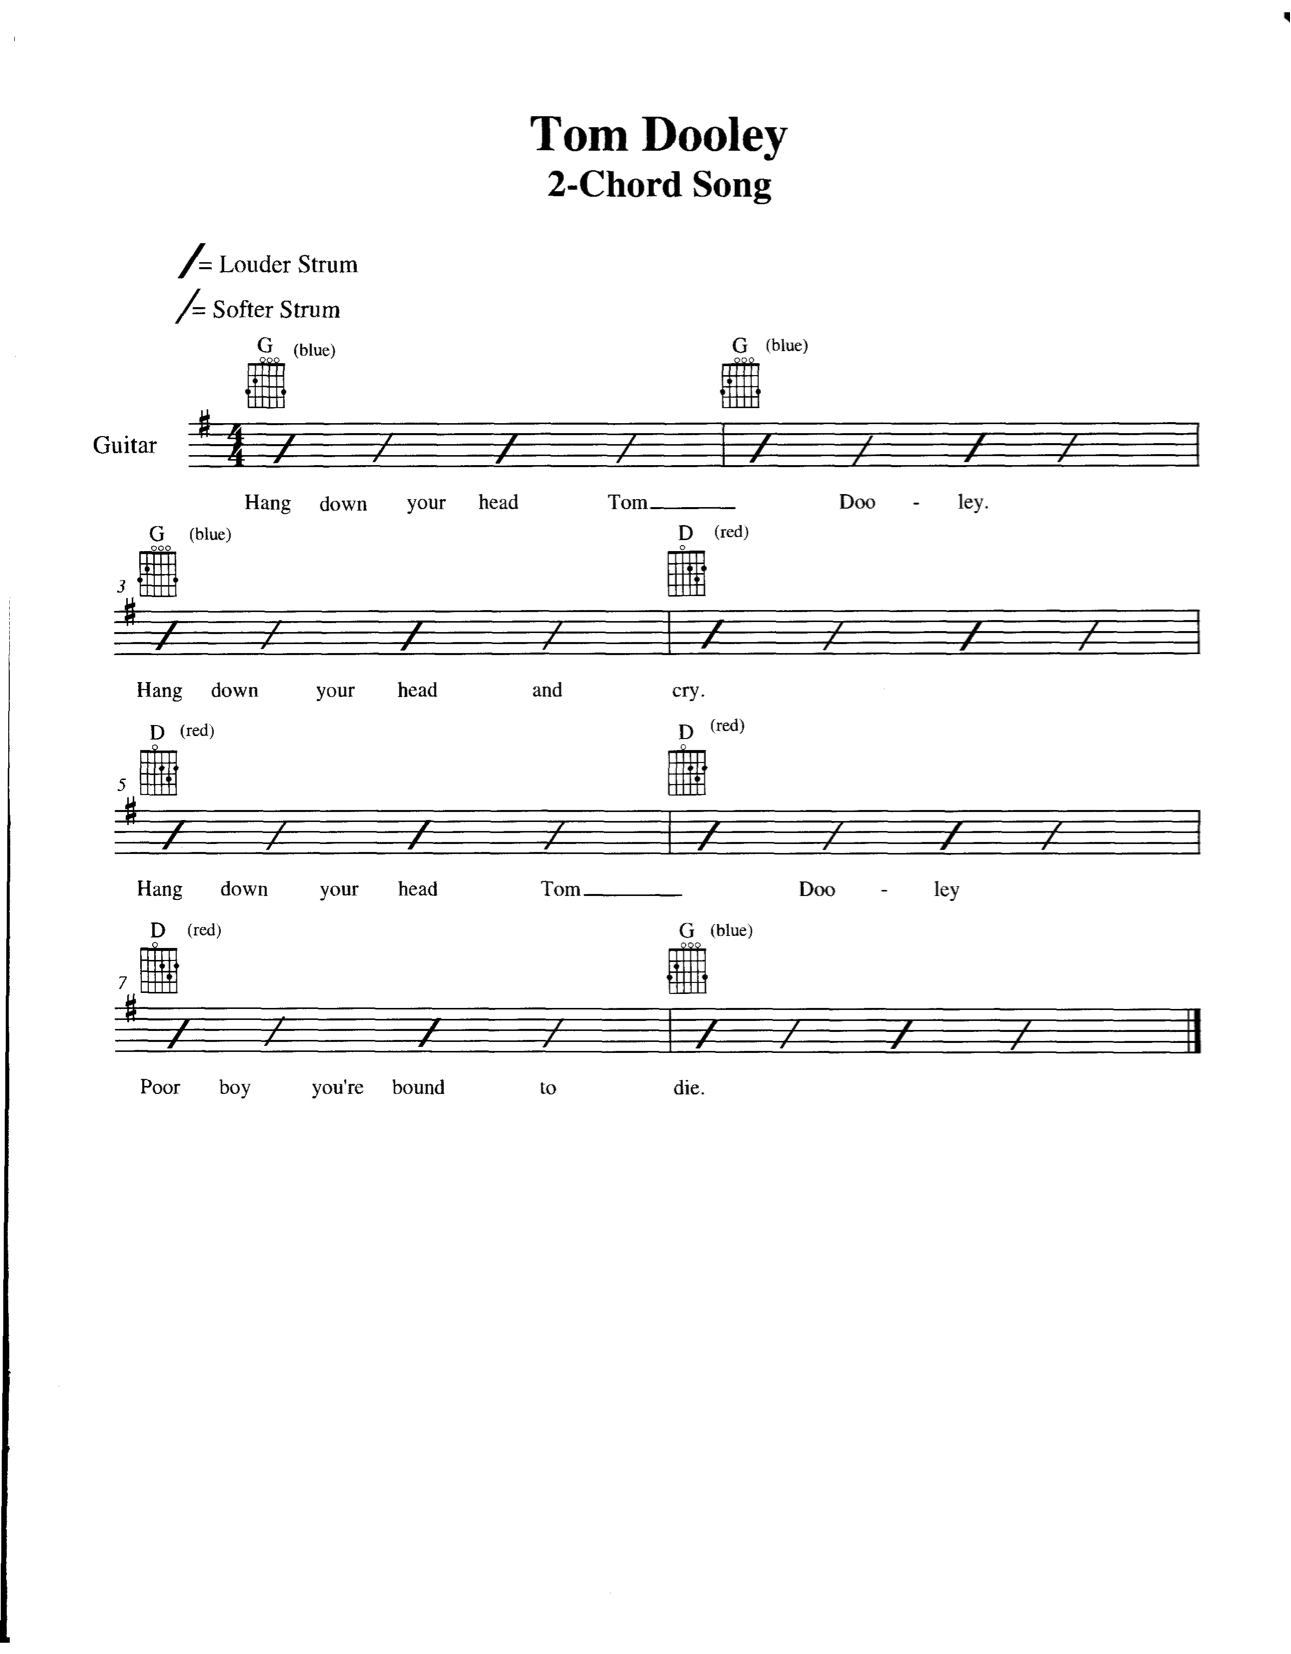 Four Chord Song 4 Lesson Two Chord Song Tom Dooley Chord Buddy Europe Learn To